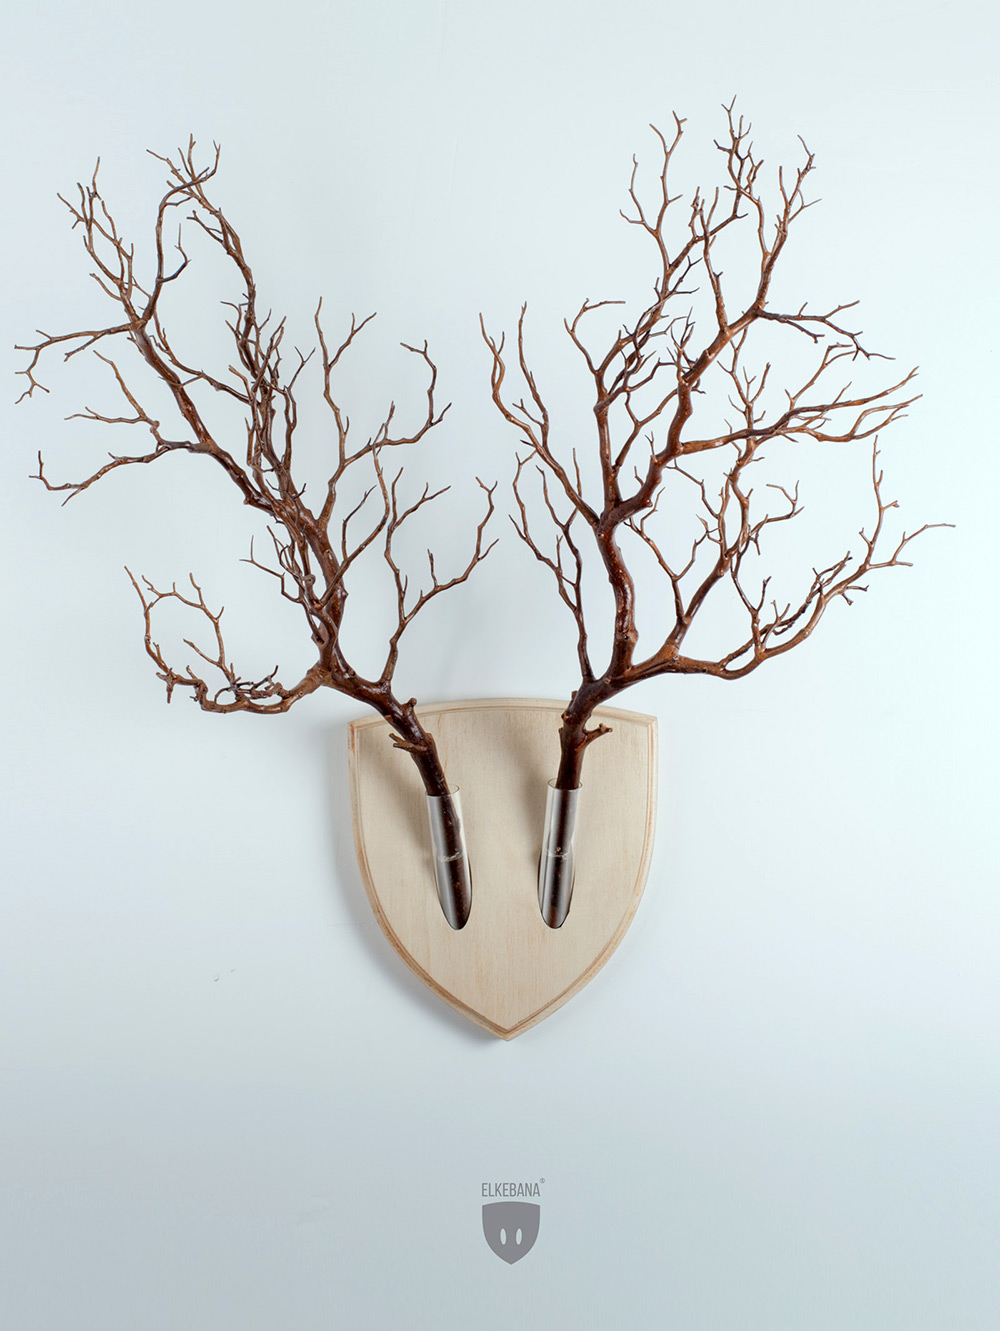 If you enjoy the aesthetic appeal of animal antlers but hate the idea of taxidermy, Elkebana might b